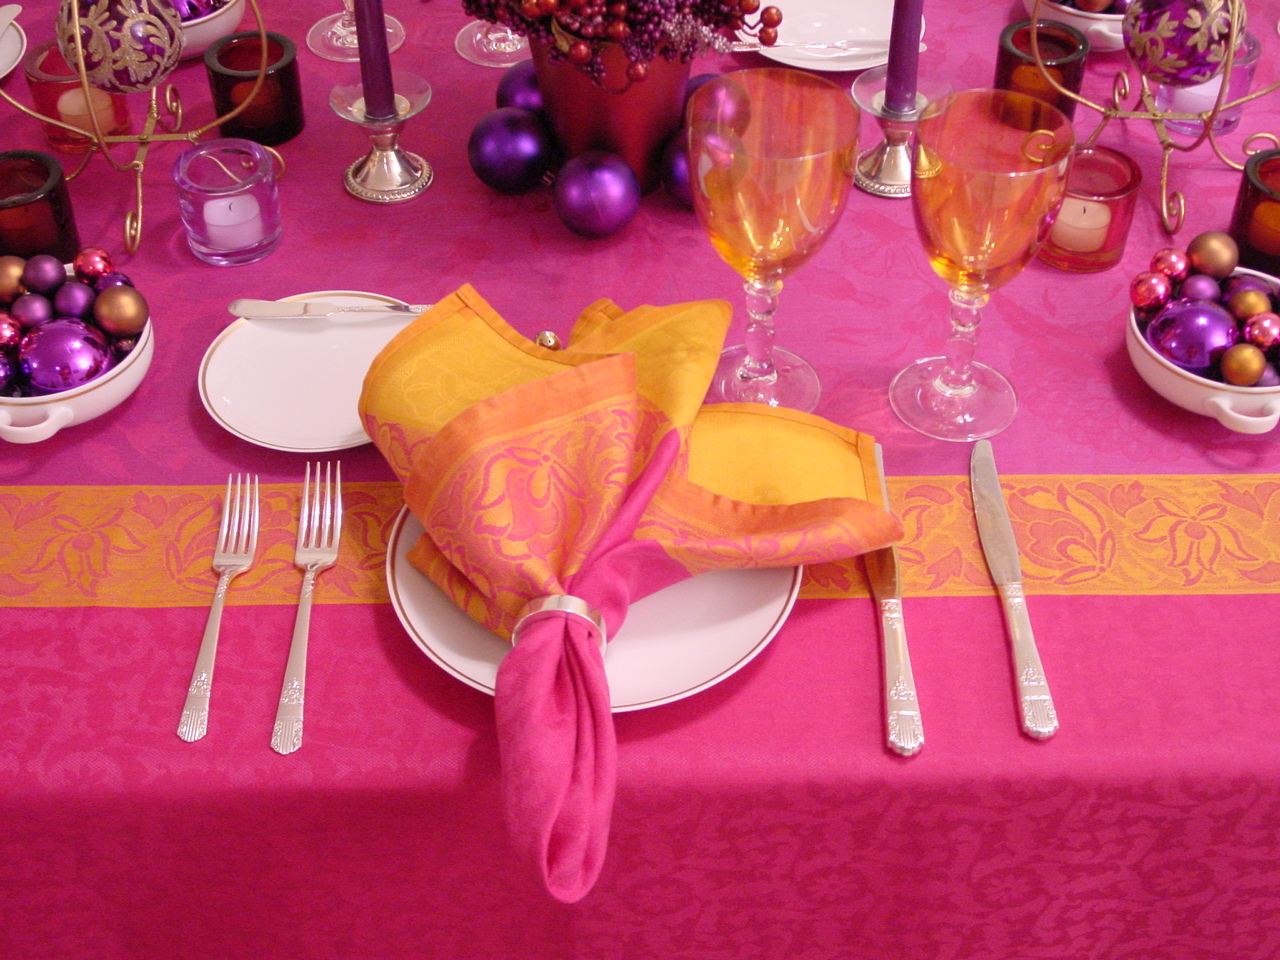 Pinks, purples and saffron are used with the 1970s 'Gold Rim' pattern to create an unusual holiday setting.